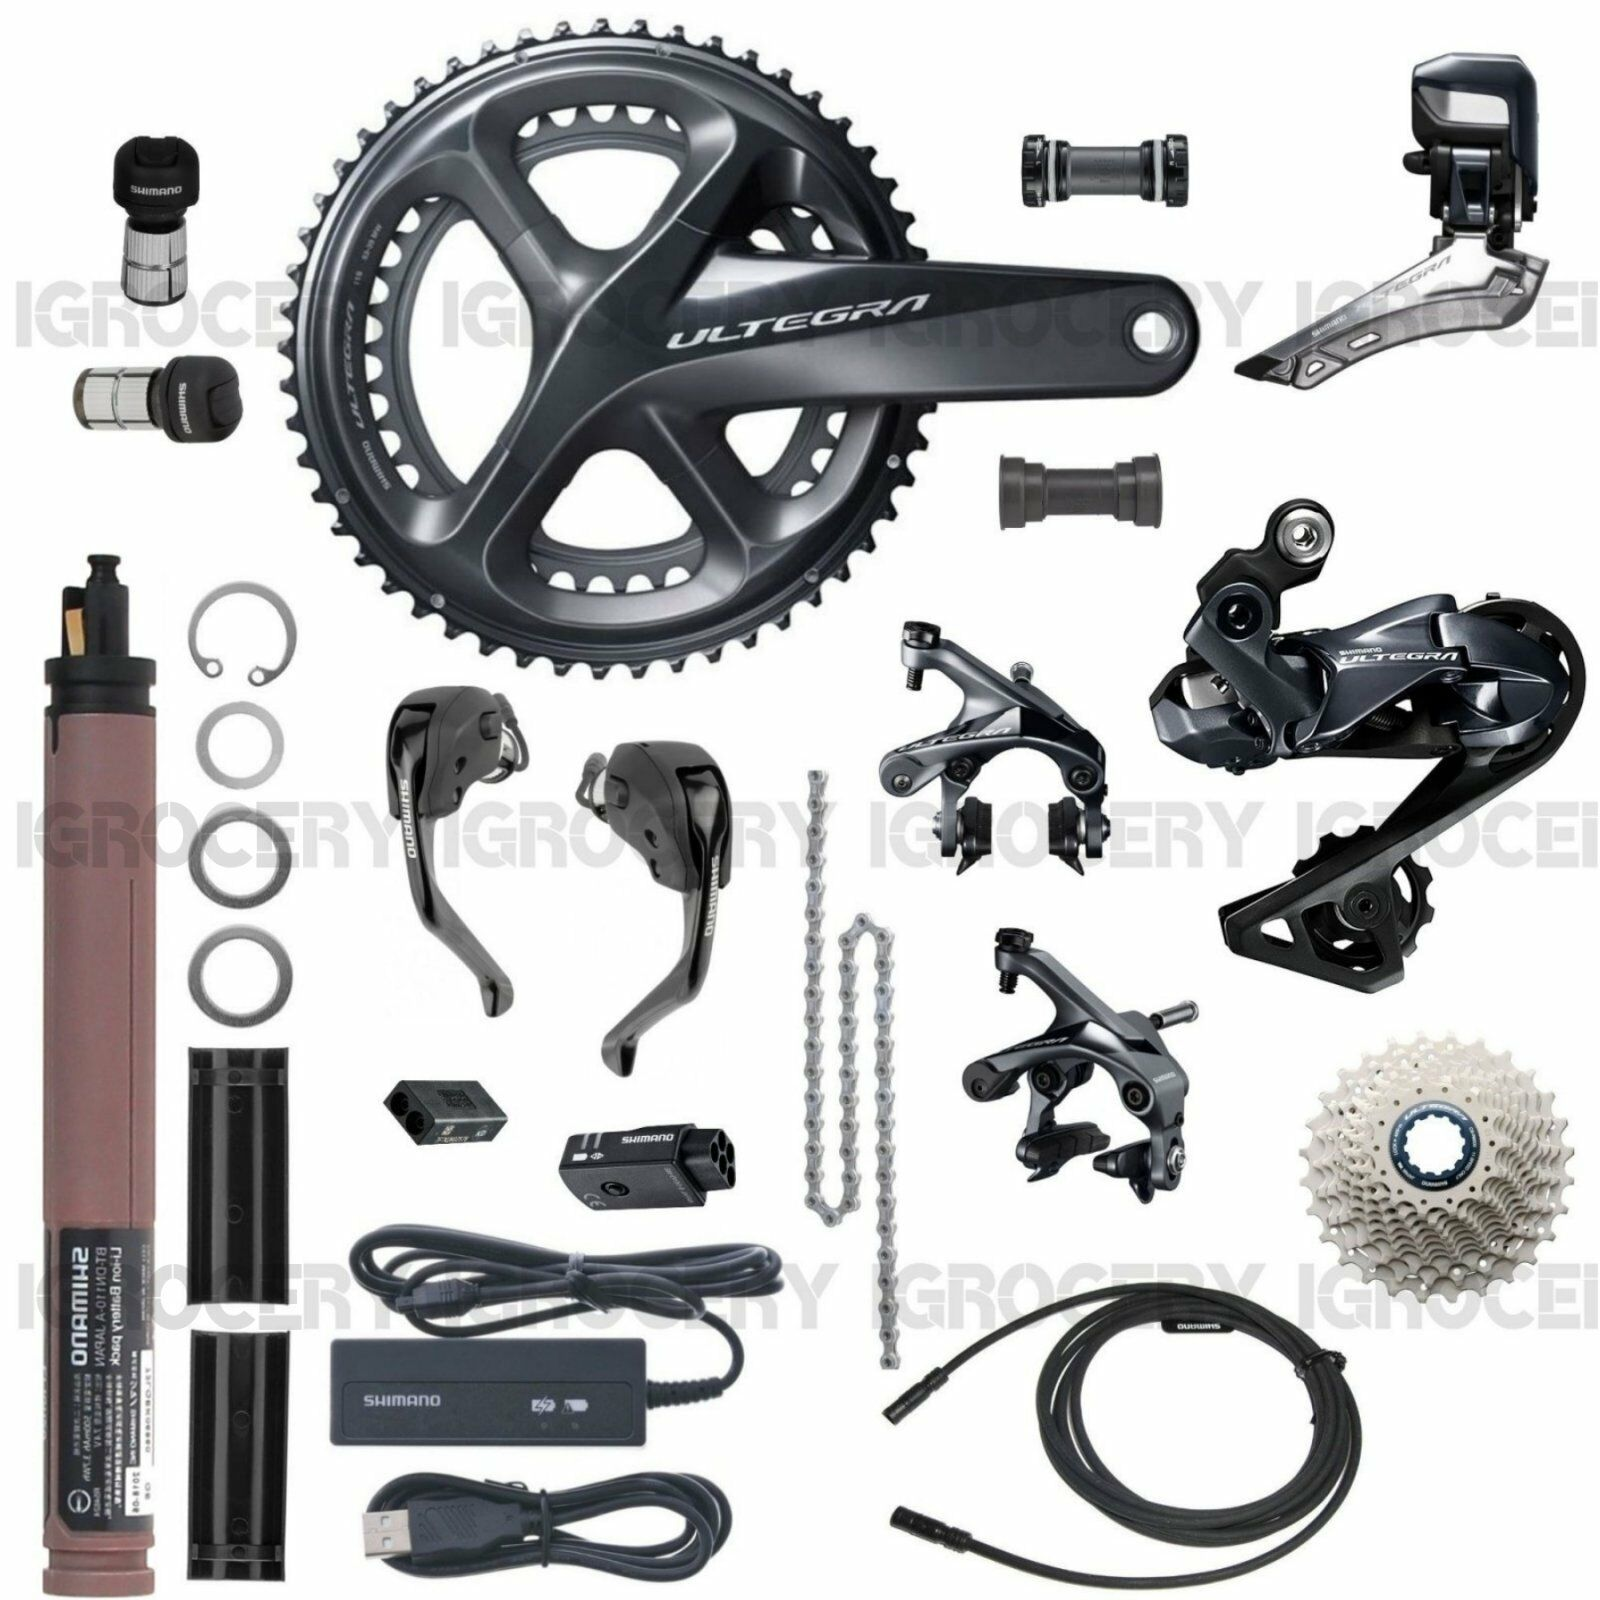 Shimano Ultegra R8060 DI2 T&T trial Upgrade GroupSet w  SW-R9160 New - 175mm